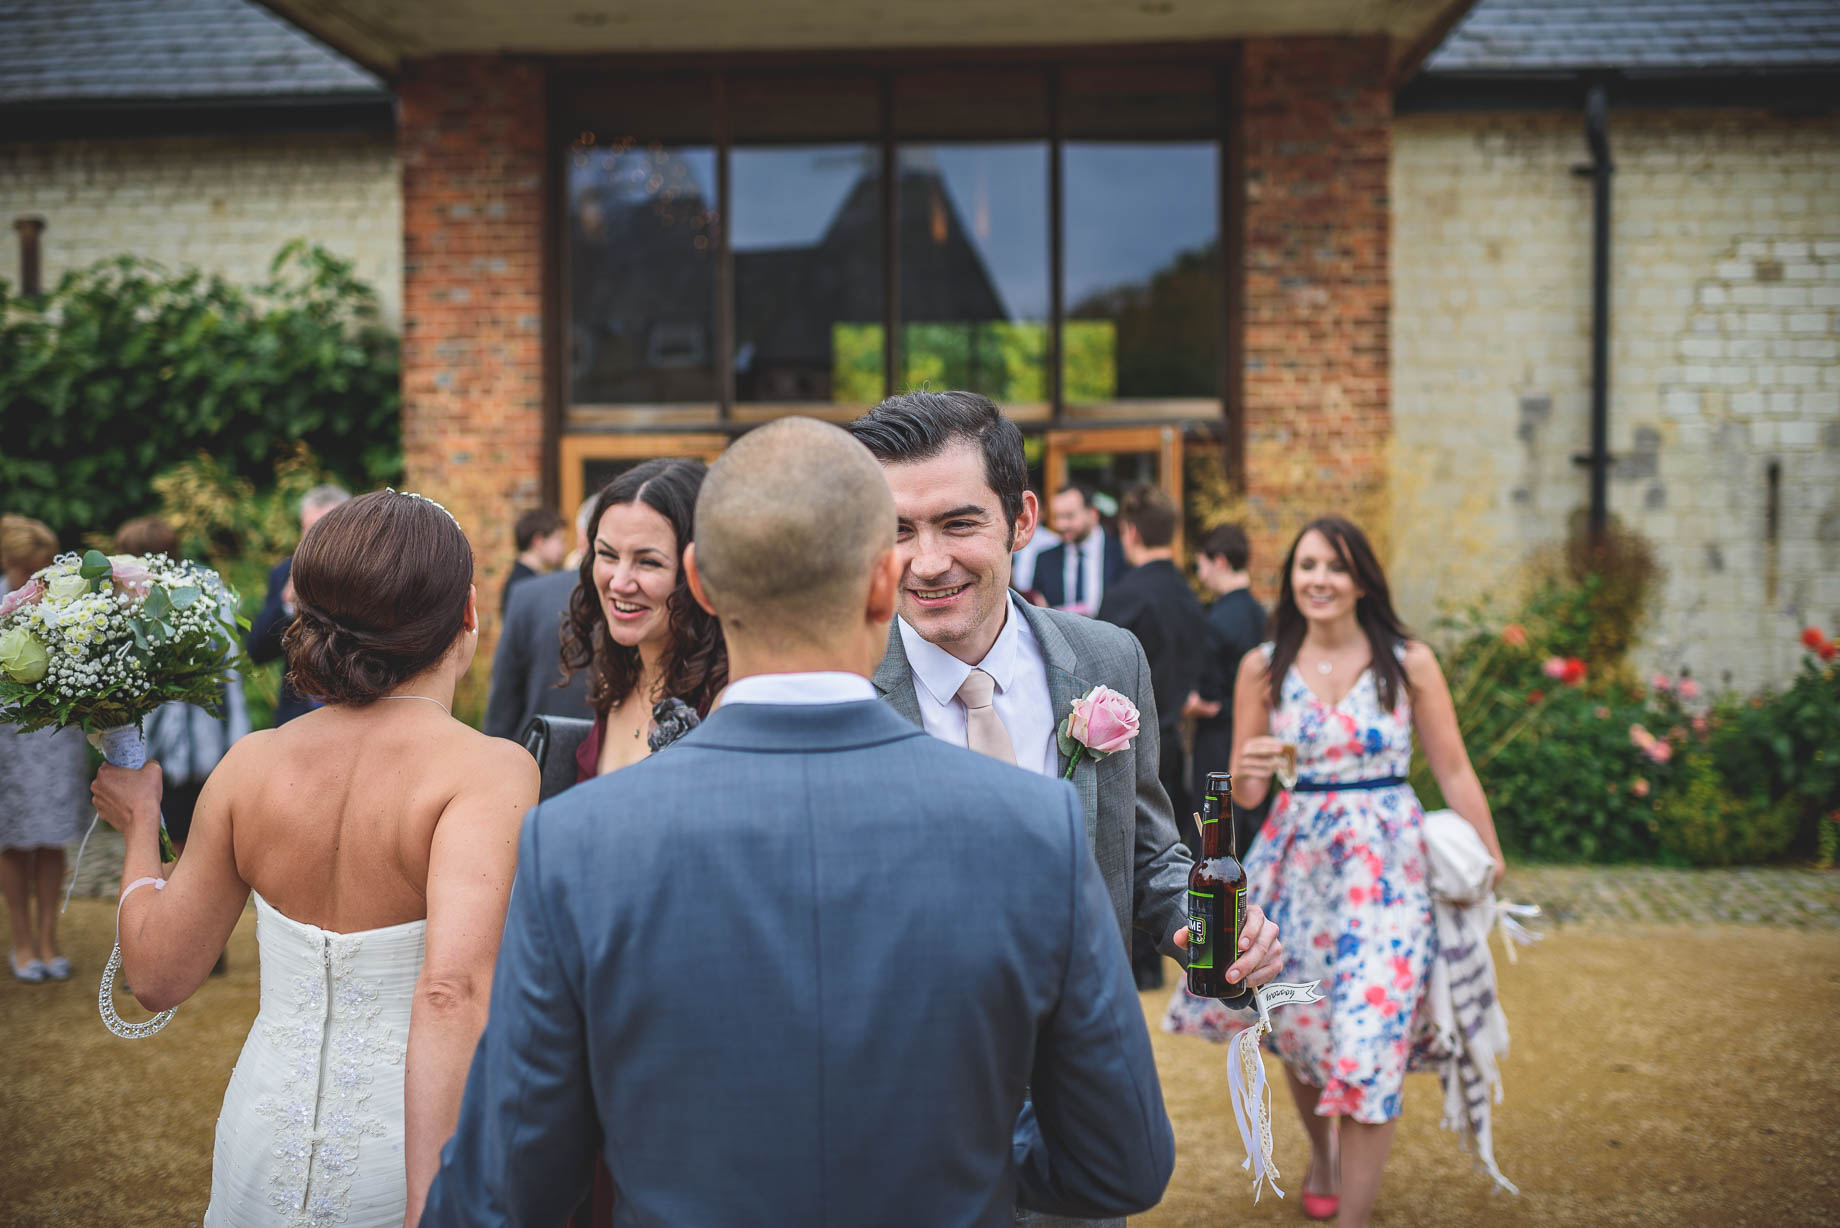 Bury Court Barn wedding photography - Guy Collier Photography - Karen and John (70 of 166)